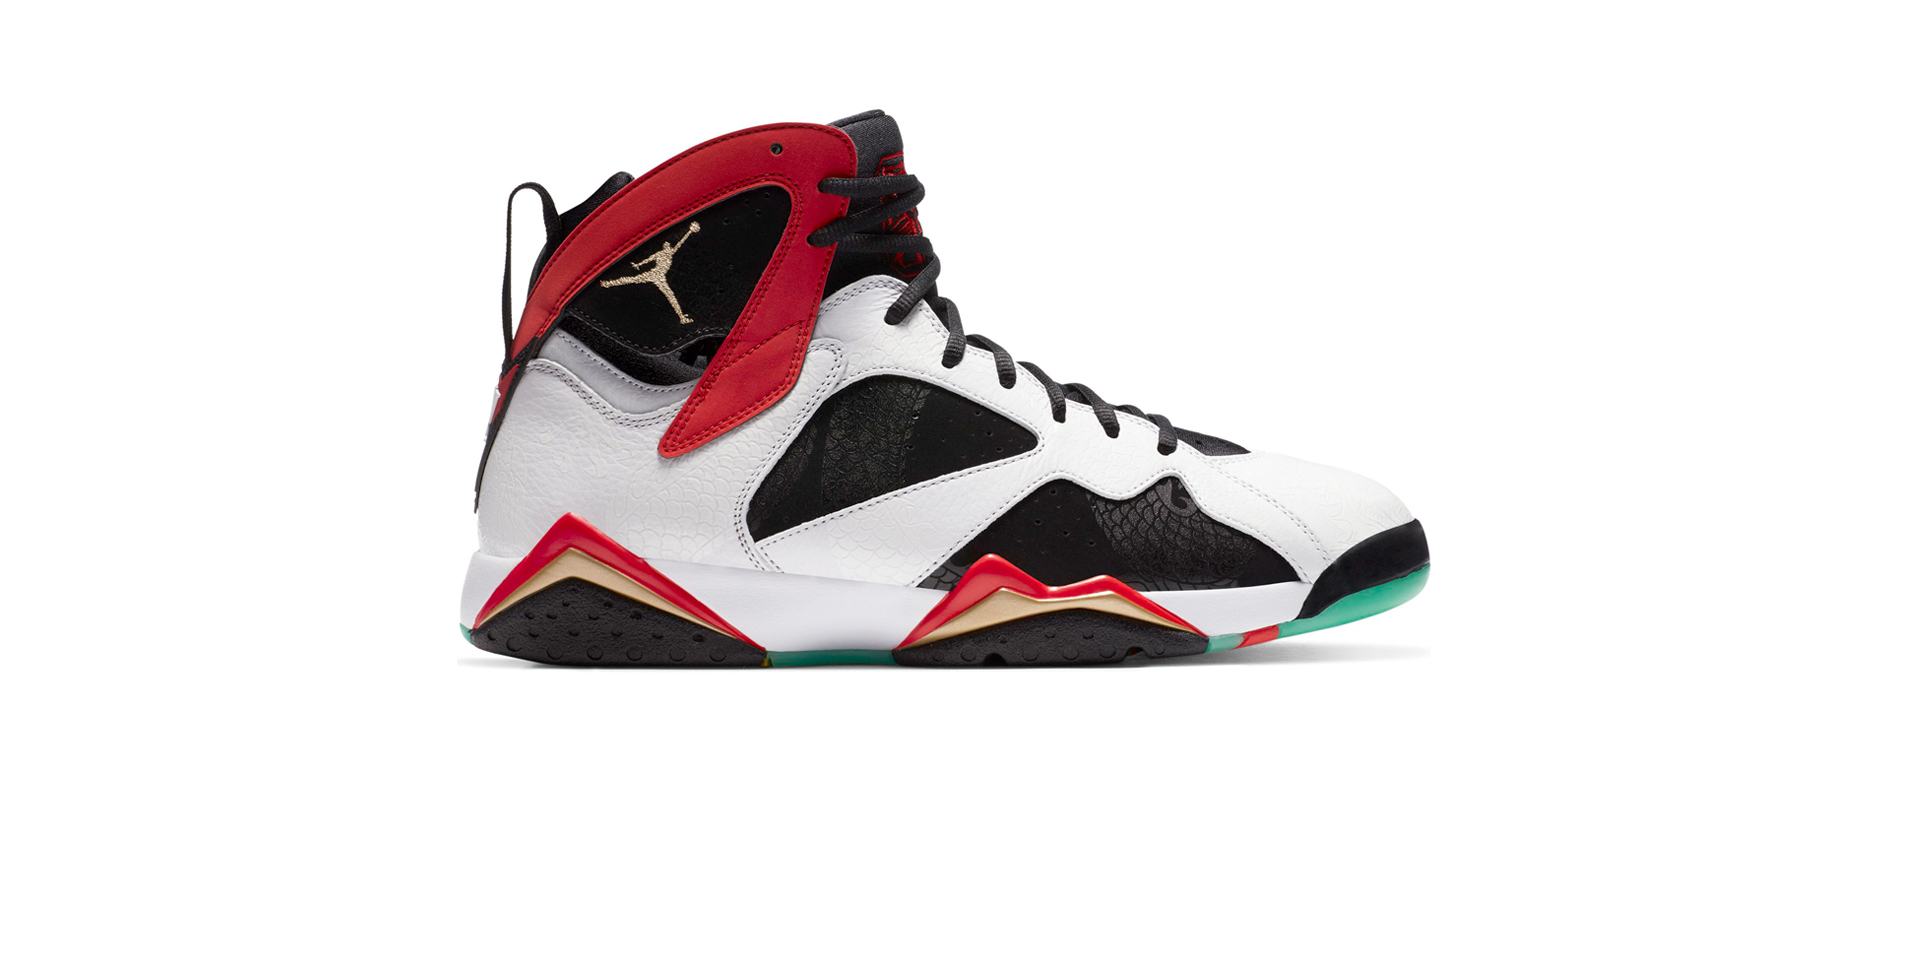 AIR JORDAN 7 RETRO GREATER CHINA - WHITE/CHILE RED-BLACK